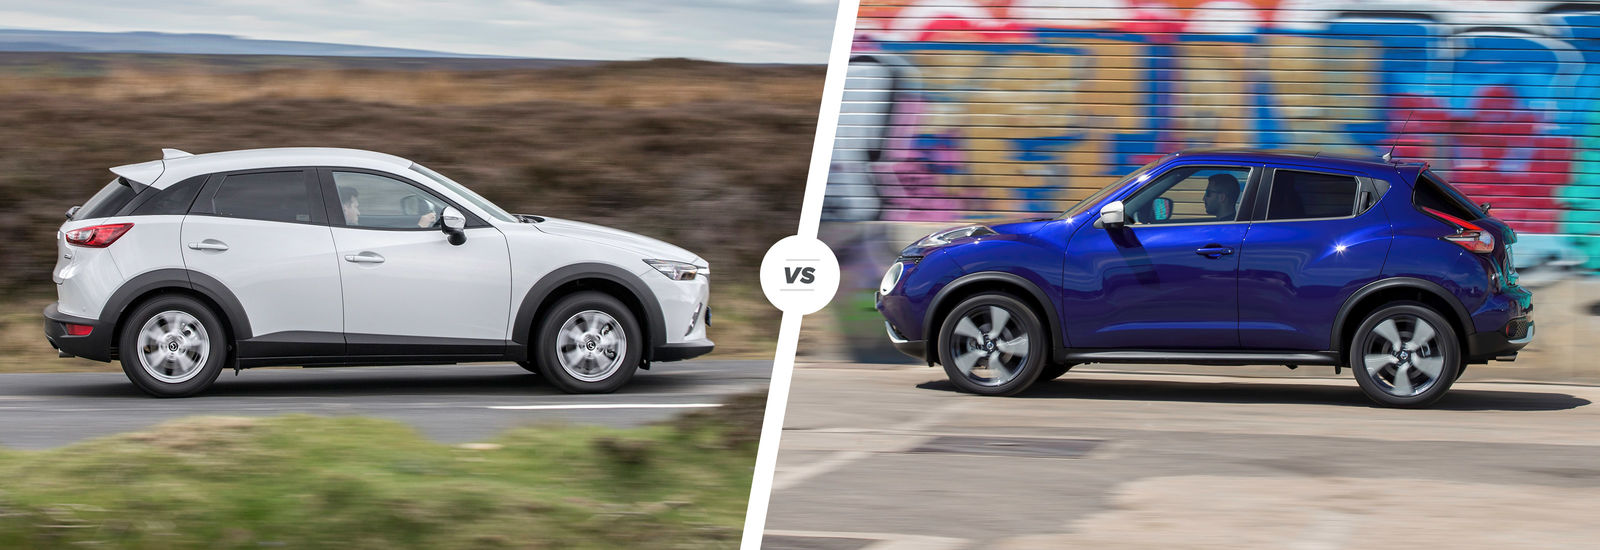 Worksheet. Mazda CX3 vs Nissan Juke crossover clash  carwow